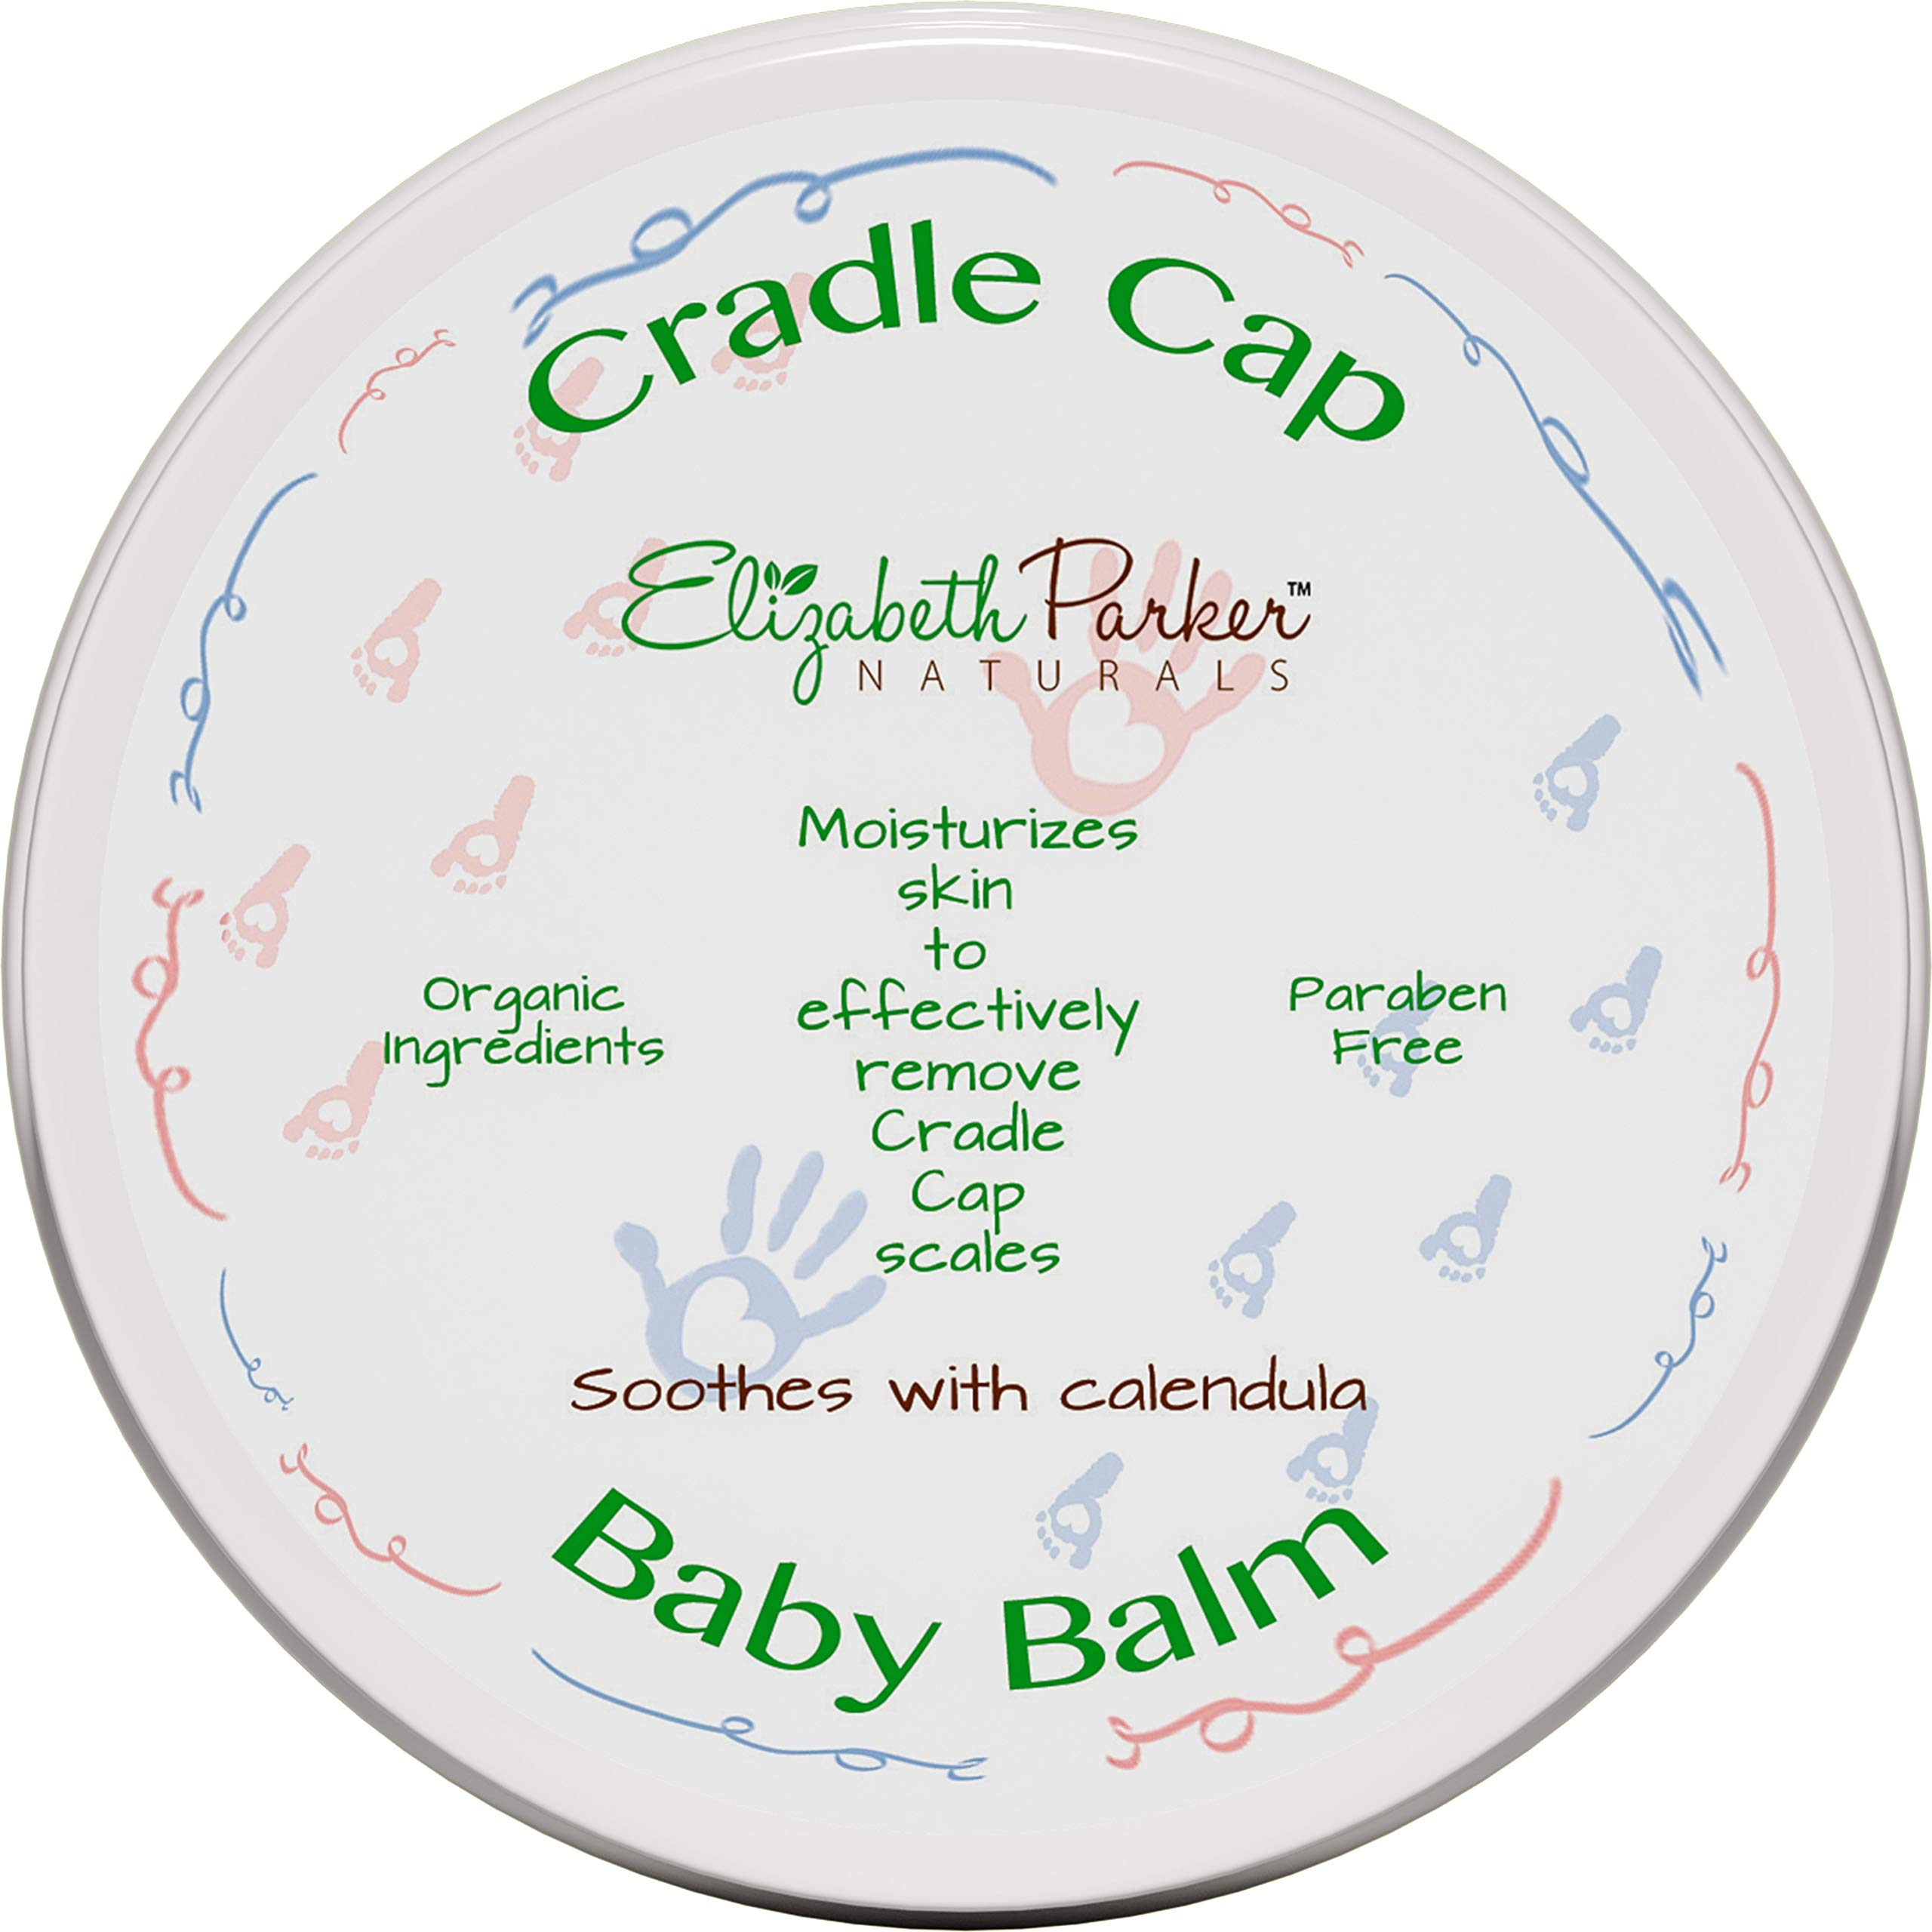 Organic Cradle Cap Baby Balm Dry Scalp Treatment With Manuka Honey - Calendula Oil - Beeswax - Infant Seborrheic Dermatitis - Baby Eczema Relief - Itch and Rash Cream - Paraben Free (2 oz) by Elizabeth Parker Naturals